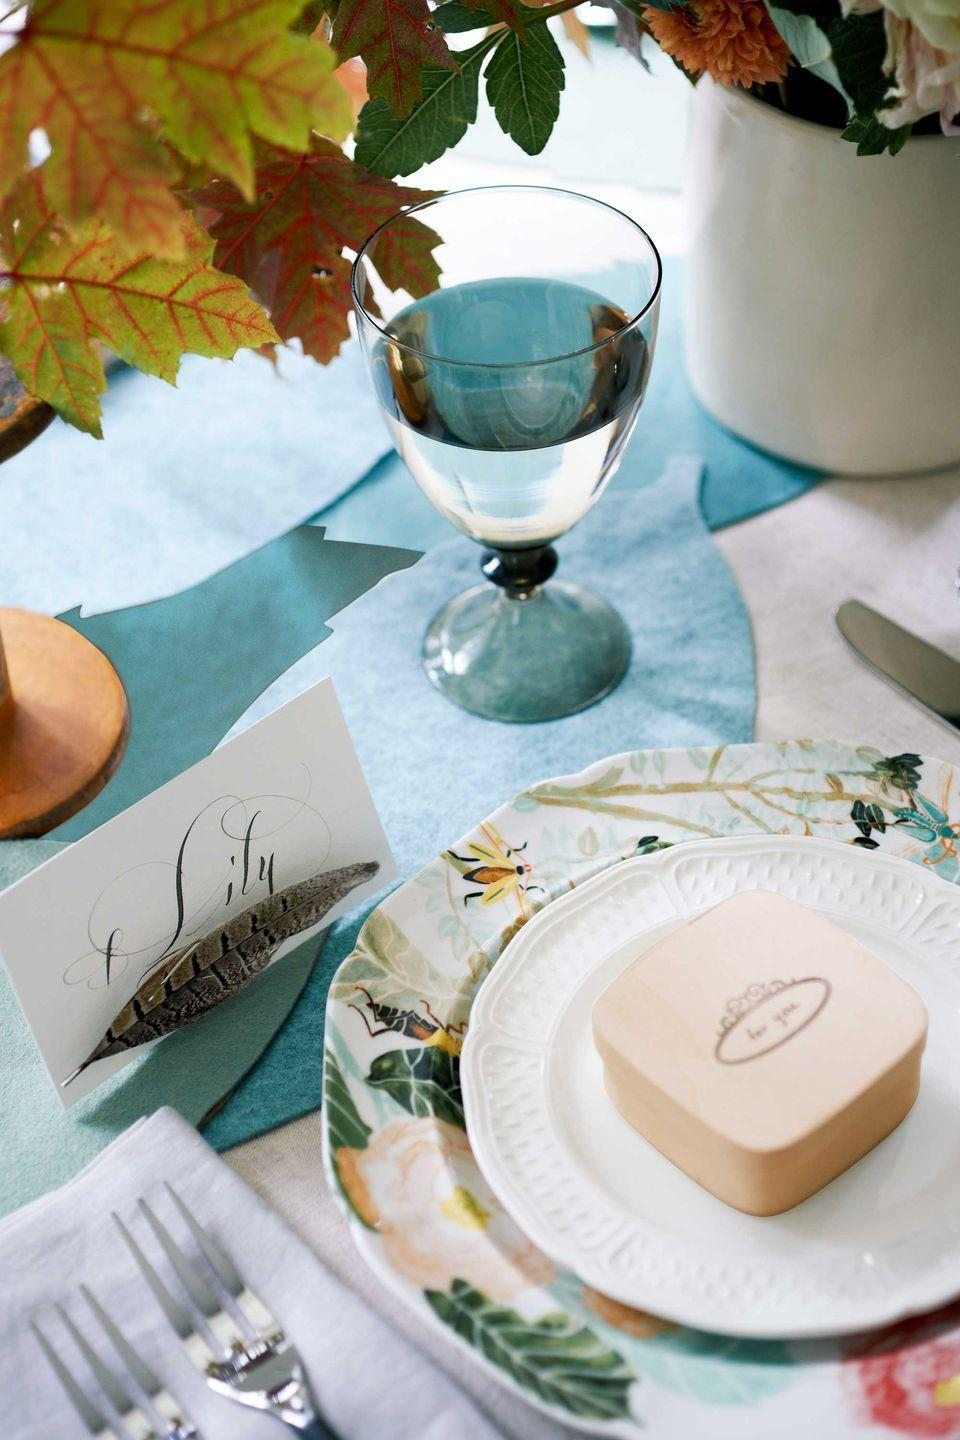 """<p>Let nature take its course with a DIY leaf runner. Crafted from lush blue and green felt, this table topper perks up plain linens and provides a padded path for hot plates. Download our <a href=""""http://clv.h-cdn.co/assets/cm/15/24/5578b8d213937_-_leaf-table-runner.pdf"""" rel=""""nofollow noopener"""" target=""""_blank"""" data-ylk=""""slk:leaf template"""" class=""""link rapid-noclick-resp"""">leaf template</a> and use it to cut the shapes out of felt. Create enough leaves to traverse your table, then hand-stitch the edges together in a whimsical, overlapping design. </p><p>A feather placecard lends a fine finish. More than just a way to denote seating arrangements, this pretty plumage doubles as wearable art—thanks to a bar pin hot-glued to the back. Make the quill stand upright by hot-gluing a magnet to the side of a cork, then sliding the placecard between the feather pin and cork magnet. As for the gorgeous handwriting, we splurged on professional calligraphy. </p><p><a class=""""link rapid-noclick-resp"""" href=""""https://www.amazon.com/Blue-Tones-Multi-Pack-Sheets-Merino/dp/B07NLHR3YM/ref=sr_1_24?tag=syn-yahoo-20&ascsubtag=%5Bartid%7C10050.g.1371%5Bsrc%7Cyahoo-us"""" rel=""""nofollow noopener"""" target=""""_blank"""" data-ylk=""""slk:SHOP KRAFT BLUE FELT"""">SHOP KRAFT BLUE FELT</a></p>"""